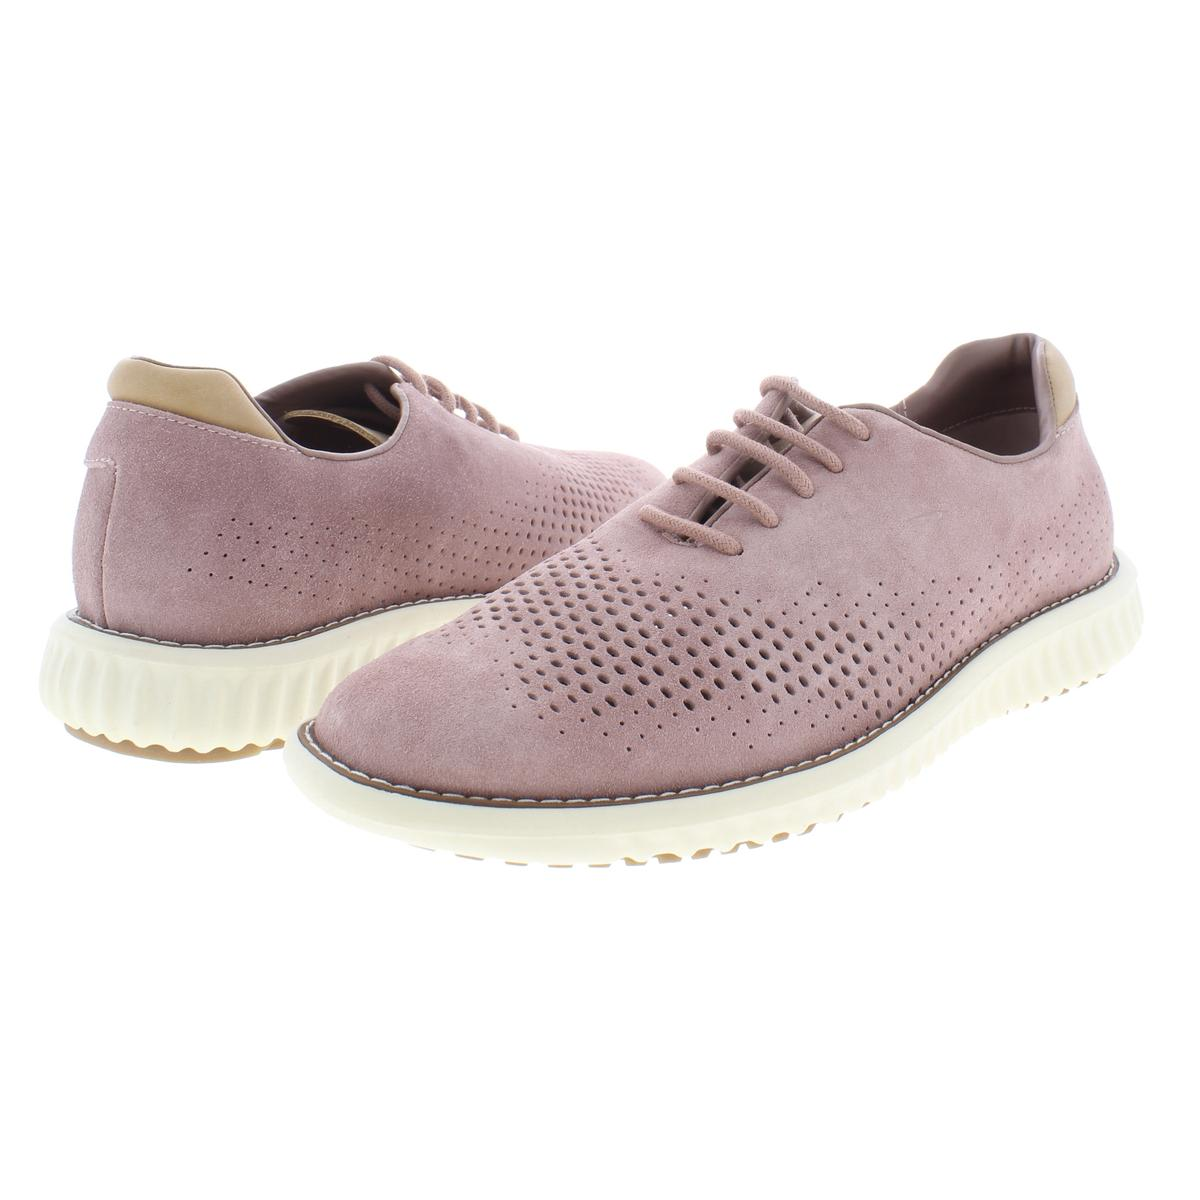 Steve-Madden-Mens-Vaelen-Suede-Perforated-Lace-Up-Oxfords-Sneakers-BHFO-9910 thumbnail 8